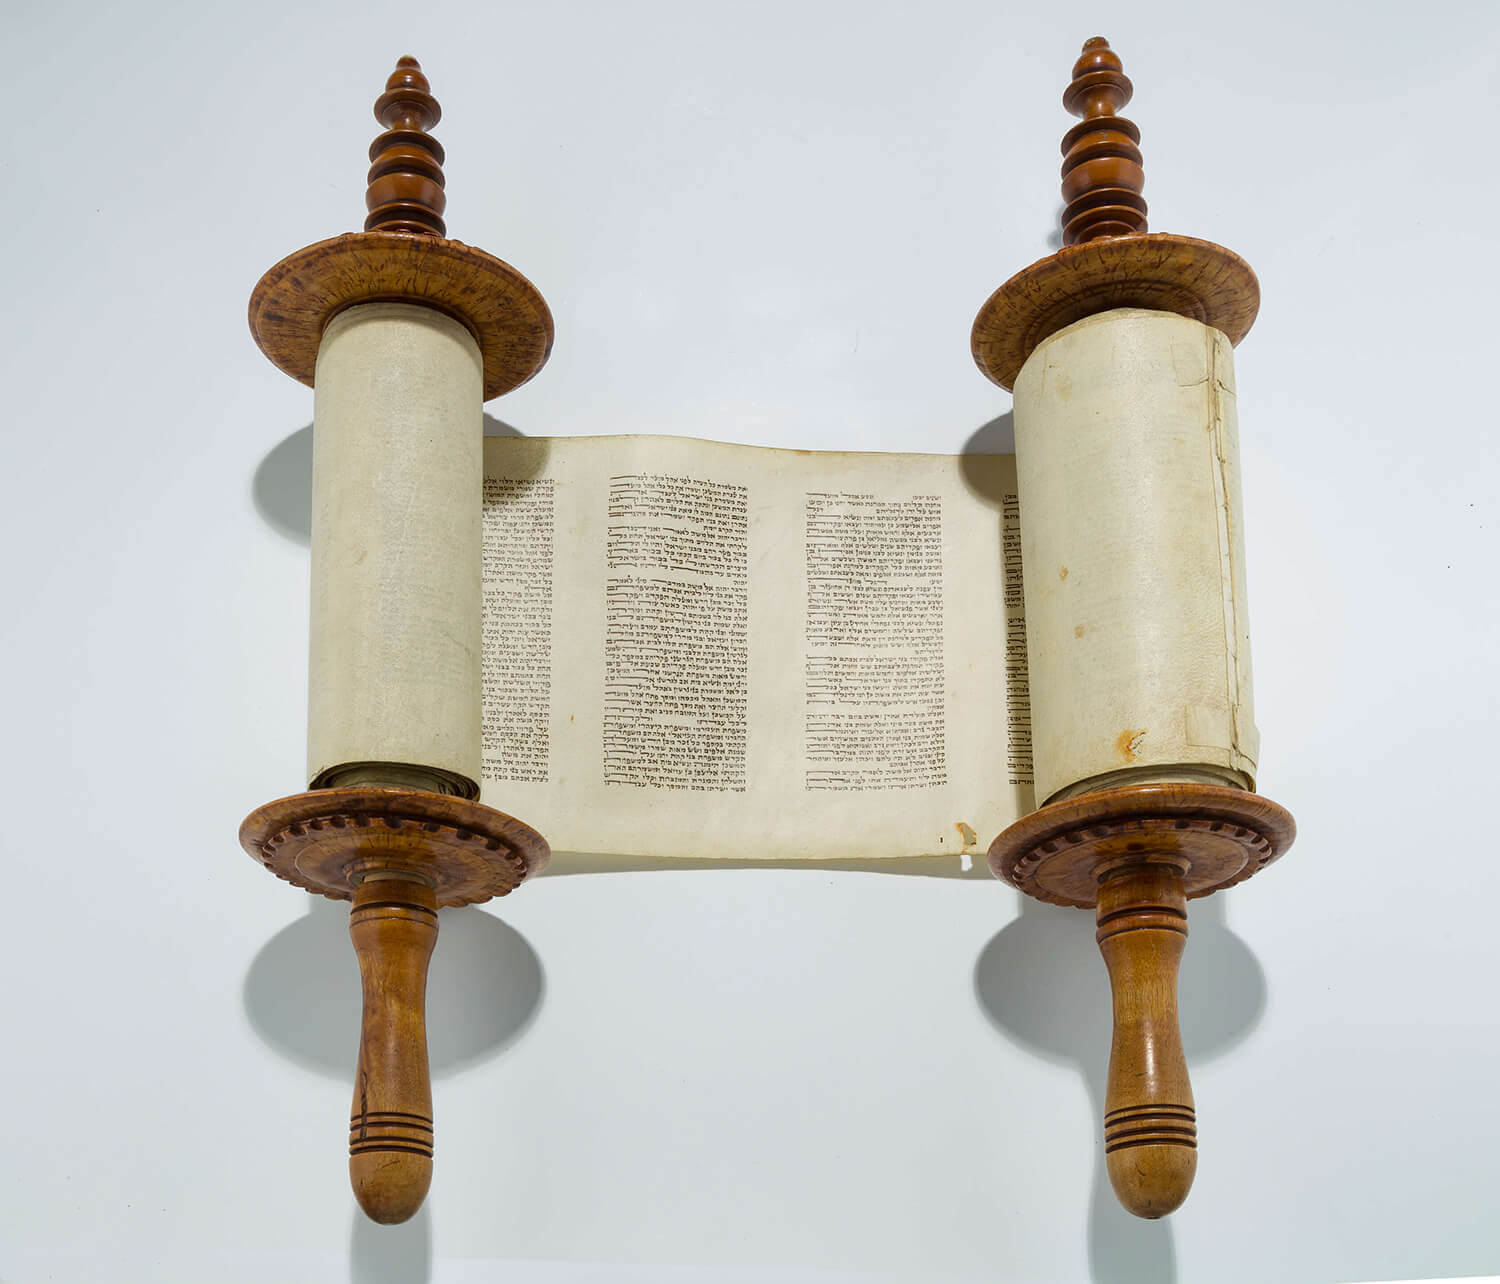 057. AN ANTIQUE MINIATURE SEFER TORAH